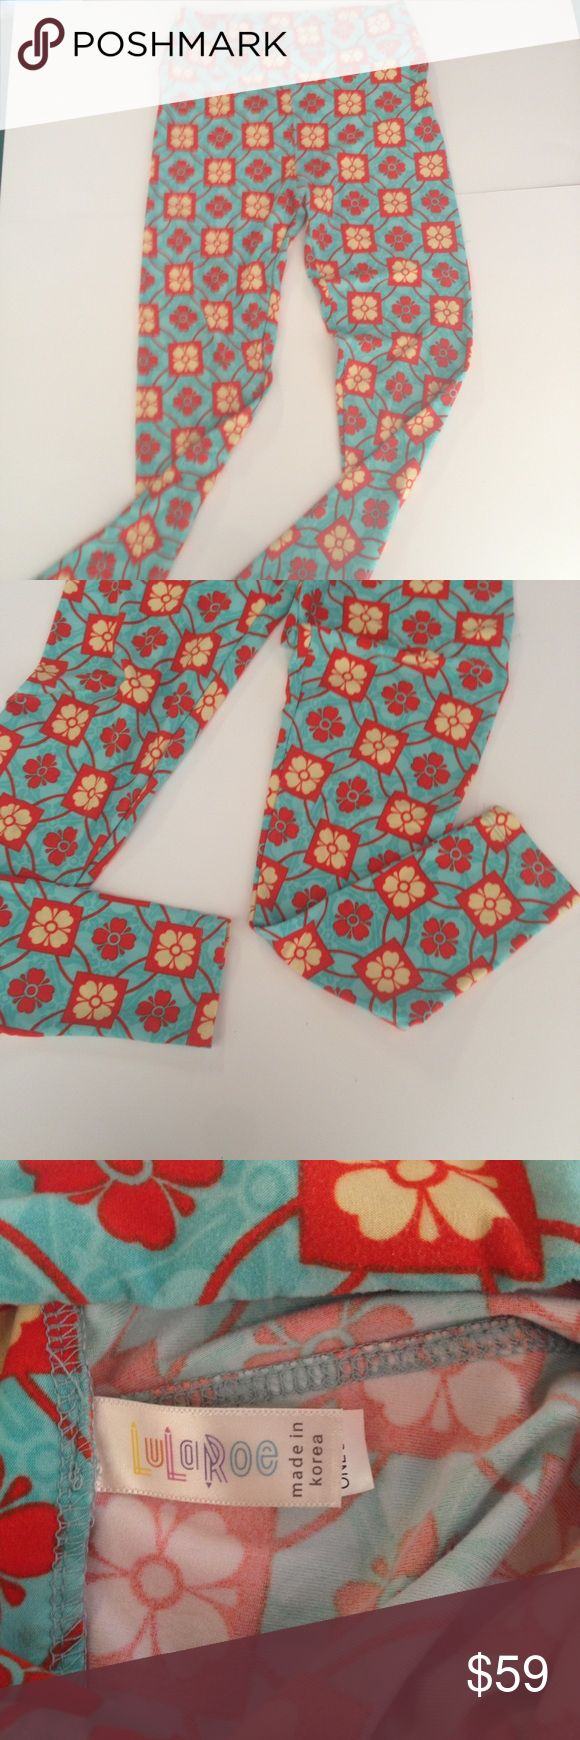 """LuLaRoe Signature One Size Leggings Now only 59.00 SALE SALE SALE SALE! Compair at 120.00 Now only 59.00 You save 61.00 Now 50% Off LuLaRoe Signature One Size Leggings. Very nice signature leggings. These leggings are made of a very soft stretchy material and fit sizes 2/4 to 10/12. So versatile! Make many outfits with this! Color: Teal, orange and beige One size (2/4 to 10/12) Material(s): 92% Polyester, 8% Spandex Women's Rise 12"""" Inseam 23"""" CONDITION: Pre owned gently used condition…"""